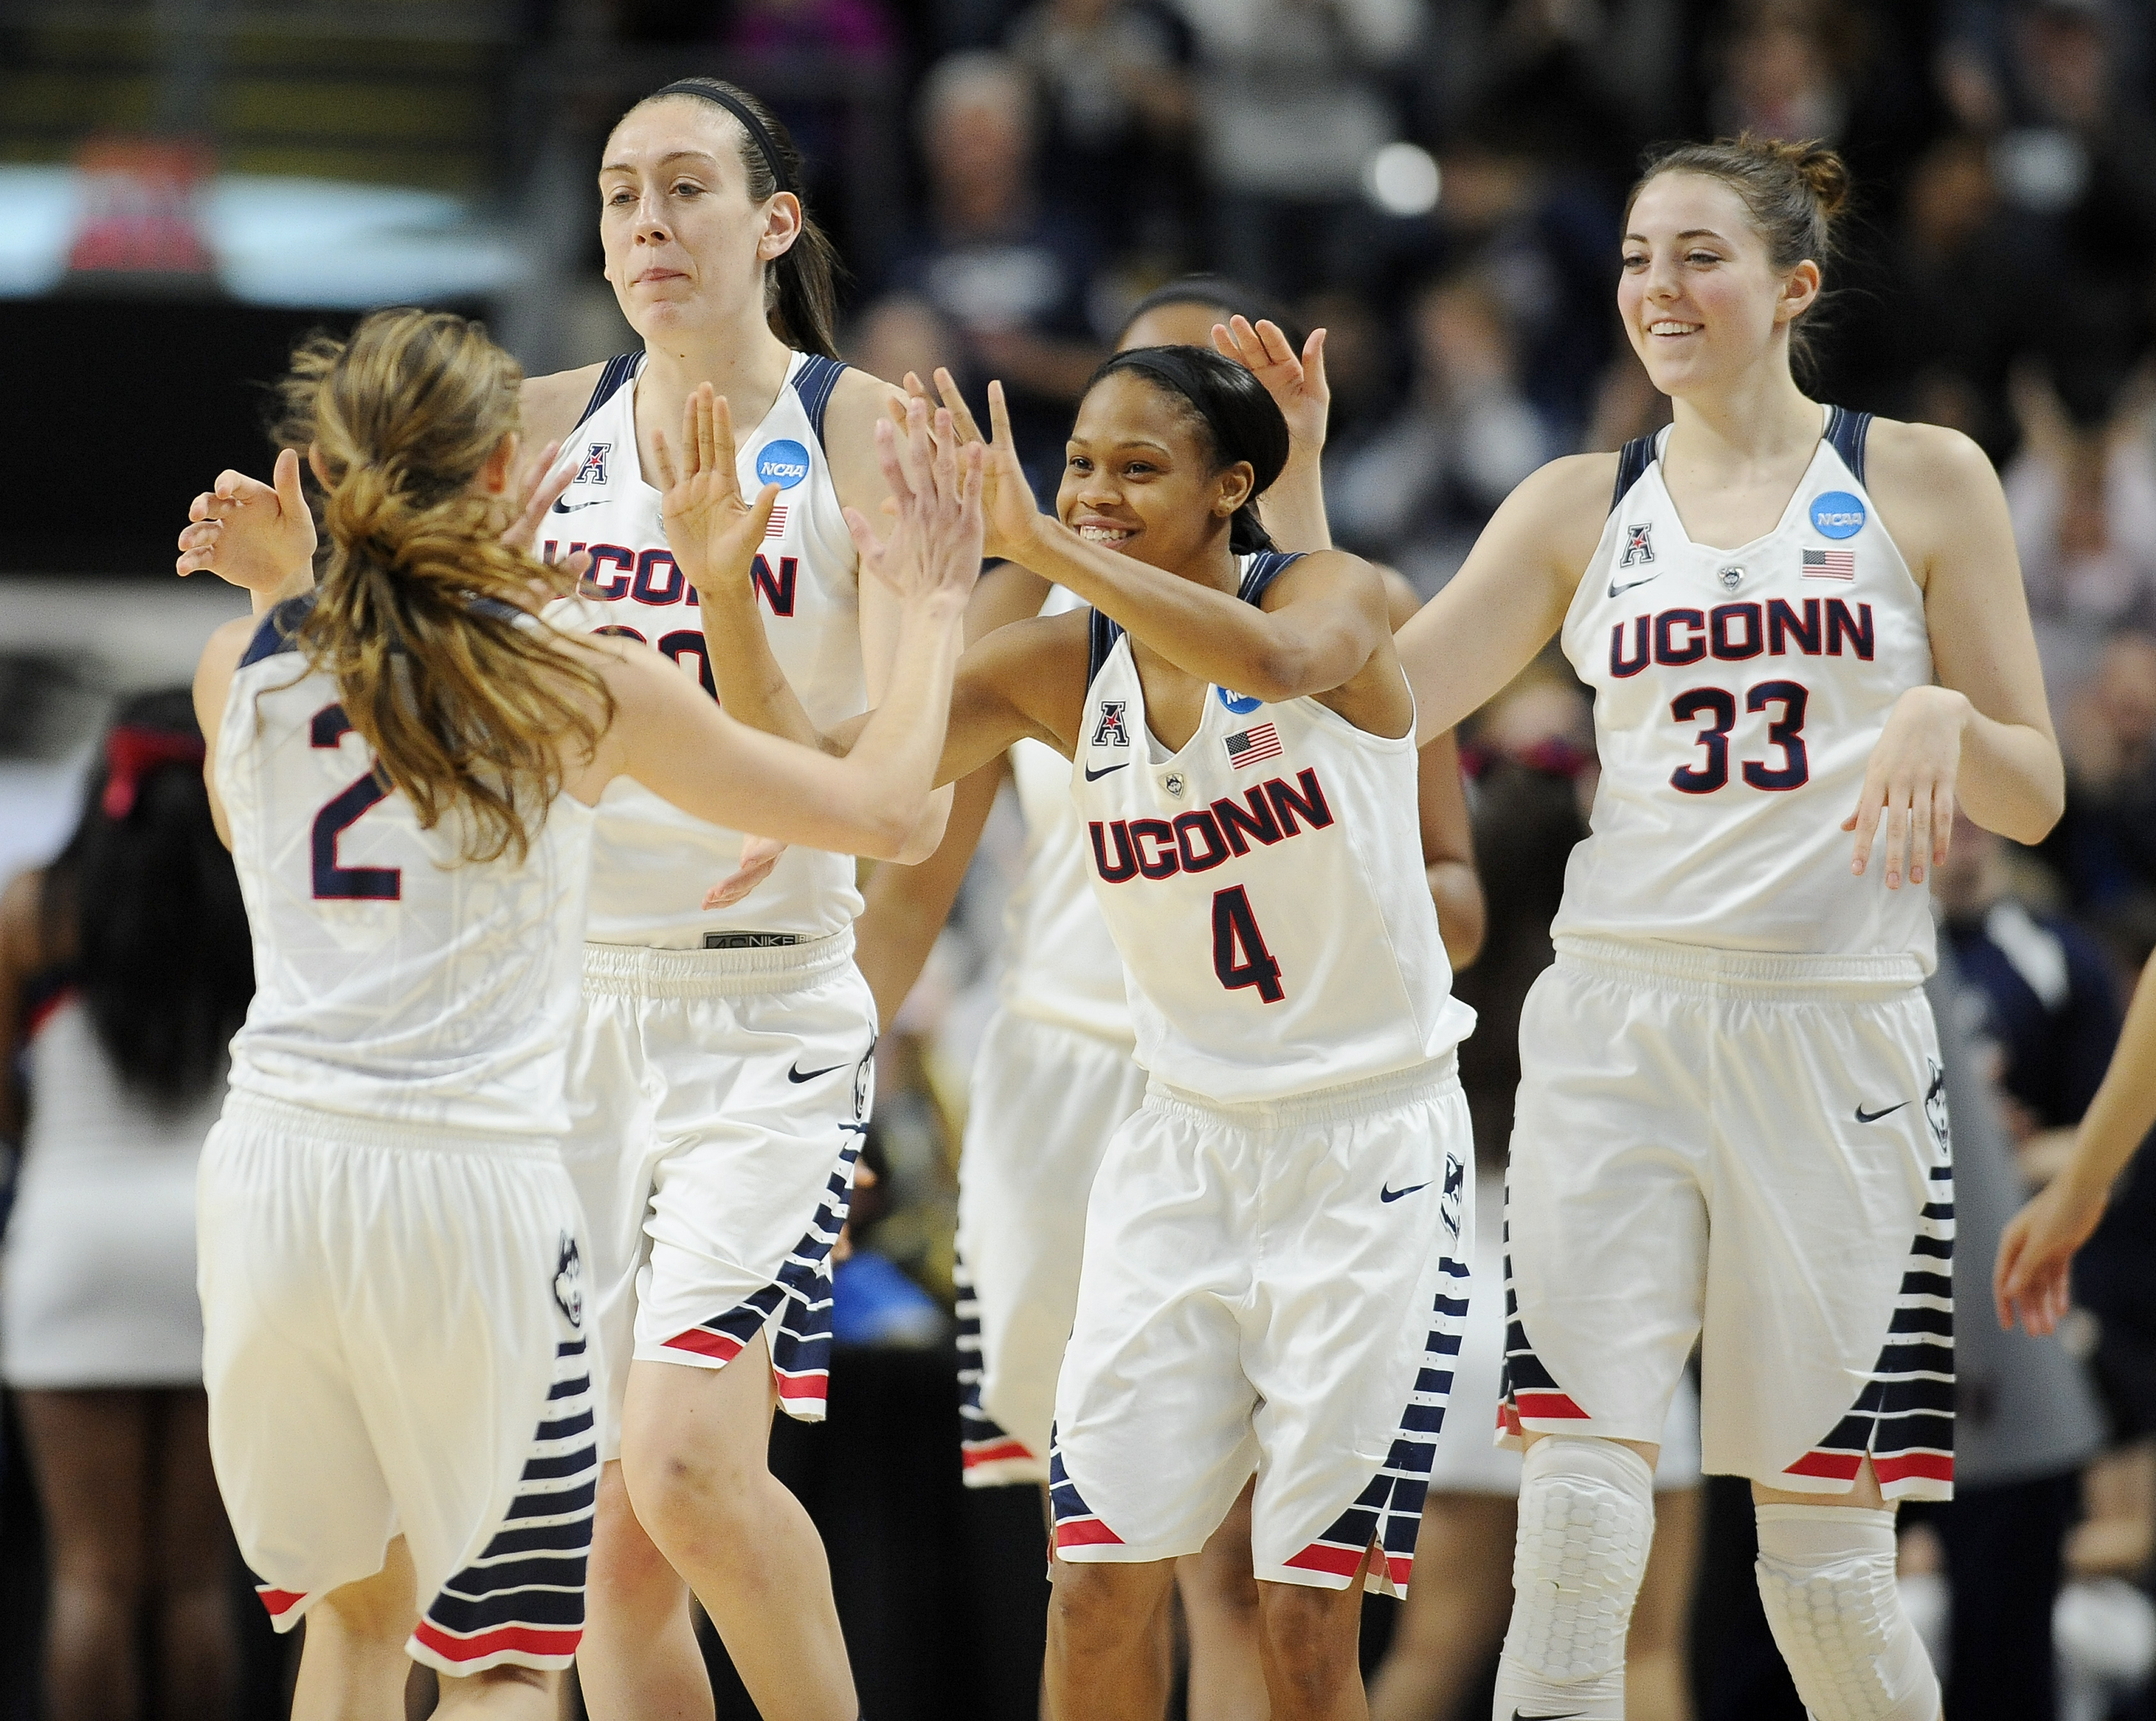 Connecticuts Briana Pulido, left, is greeted by Breanna Stewart, second from left, Moriah Jefferson, center, and Katie Lou Samuelson, right, at the end of an NCAA college basketball game against Mississippi State in the regional semifinals of the women's